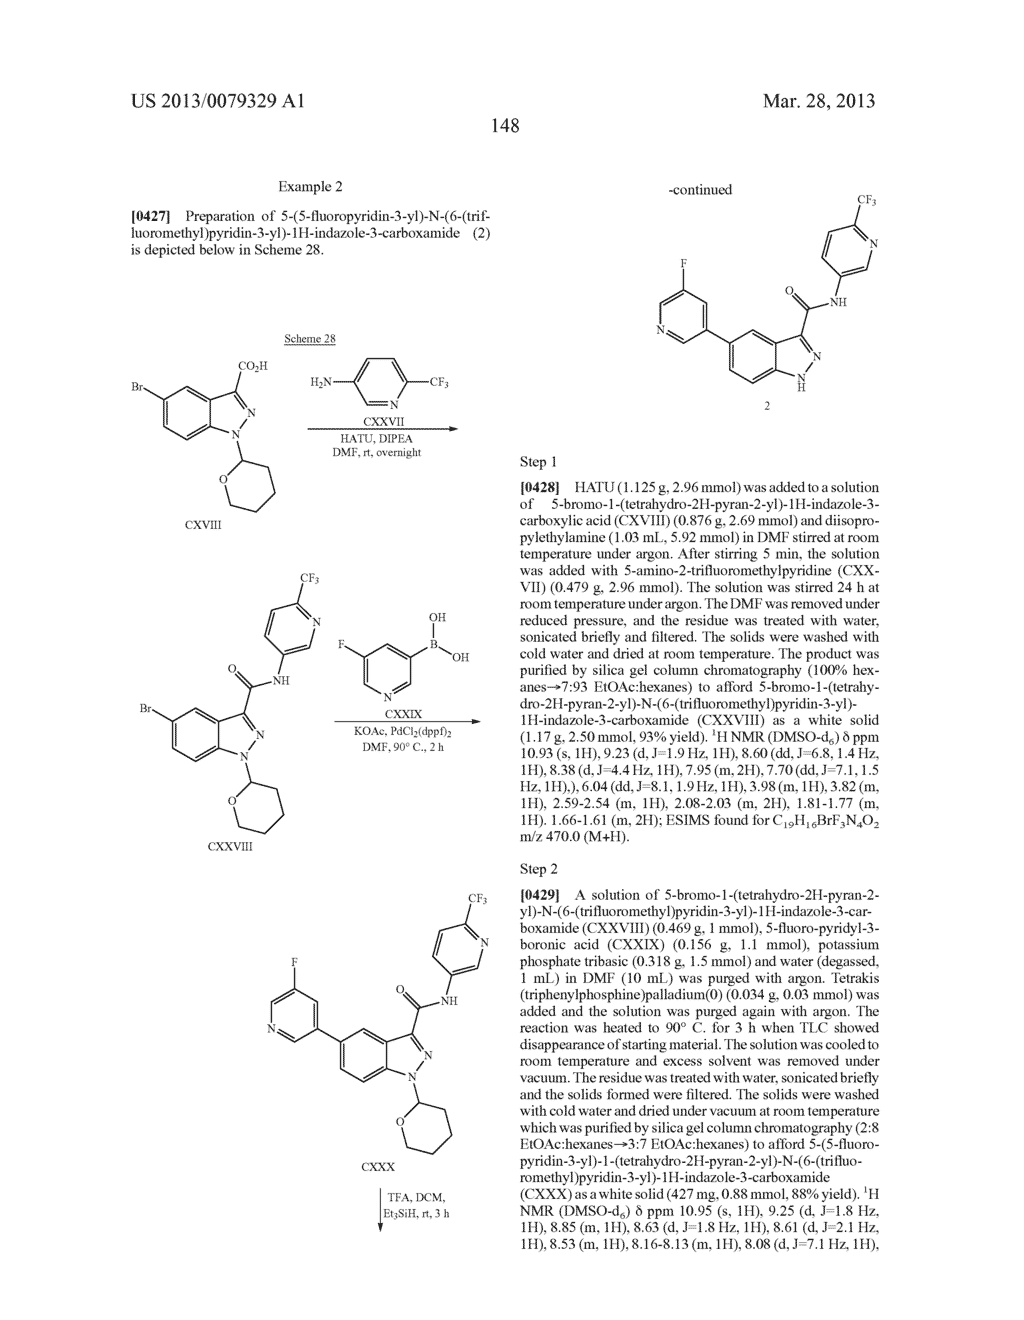 INDAZOLE-3-CARBOXAMIDES AND THEIR USE AS WNT/Beta-CATENIN SIGNALING     PATHWAY INHIBITORS - diagram, schematic, and image 149